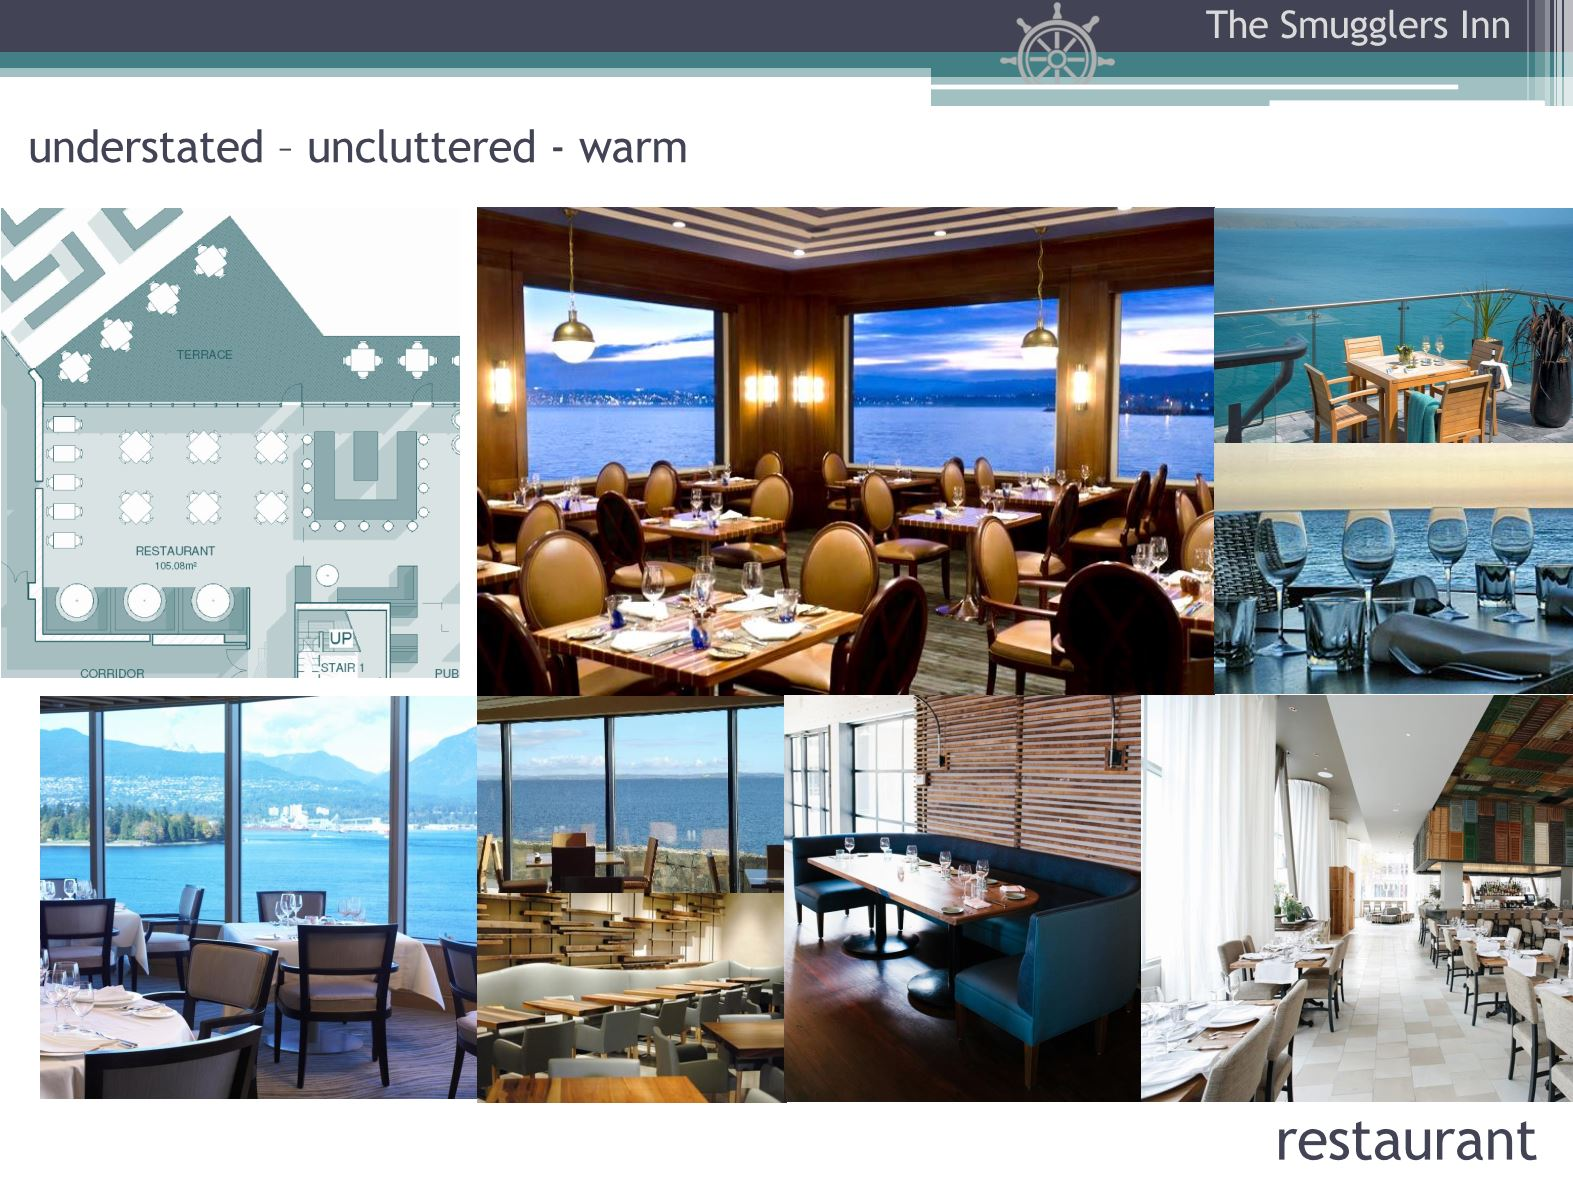 Hotel Fitout-Smugglers Inn-Mood Board-Restaurant